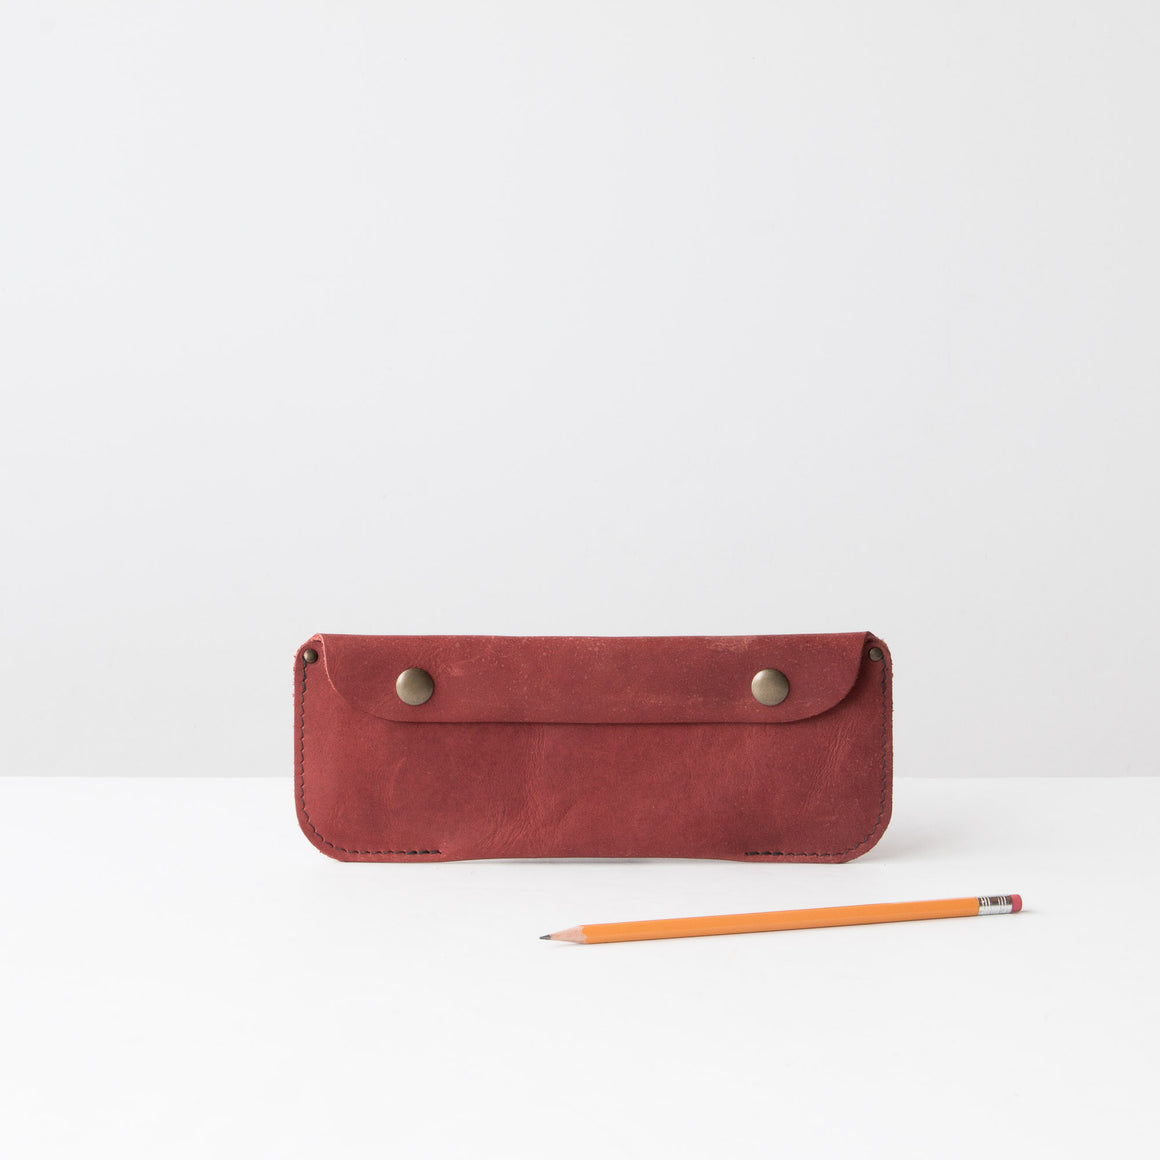 Multiusage Leather Pencil Carrying Cases - Handcrafted in Canada Sold by Chic & Basta